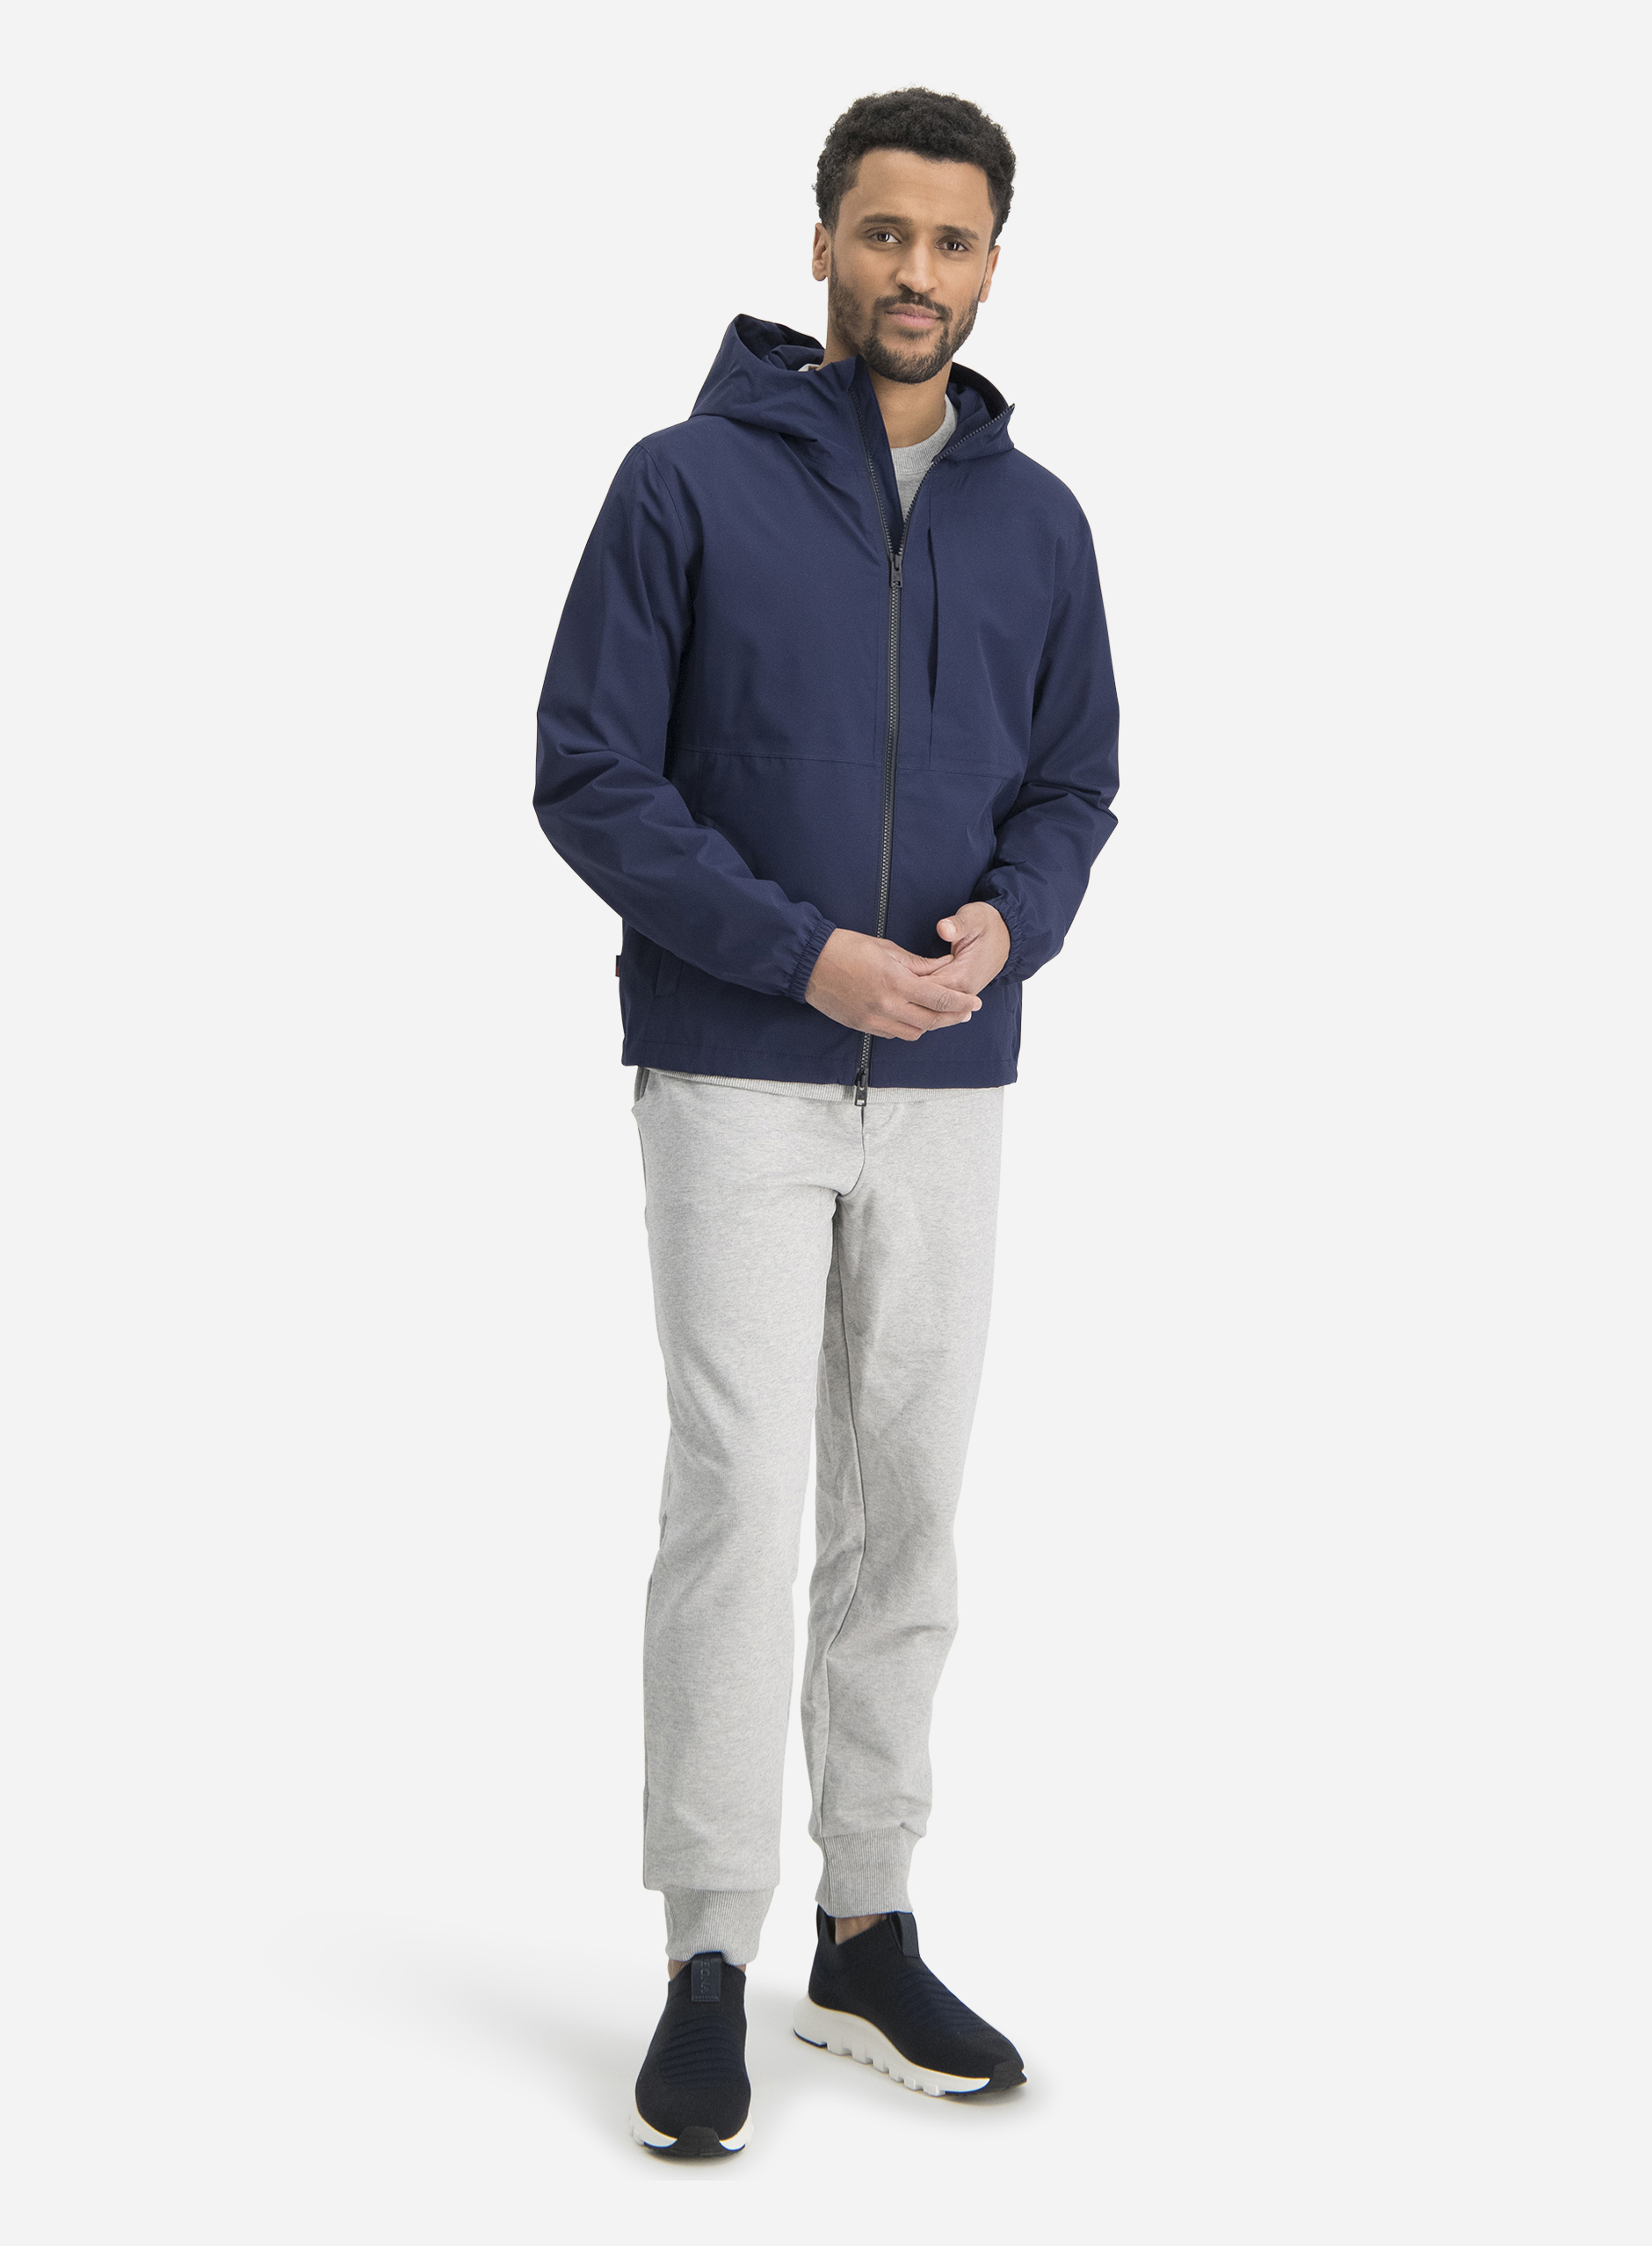 The Woolrich Casual Look